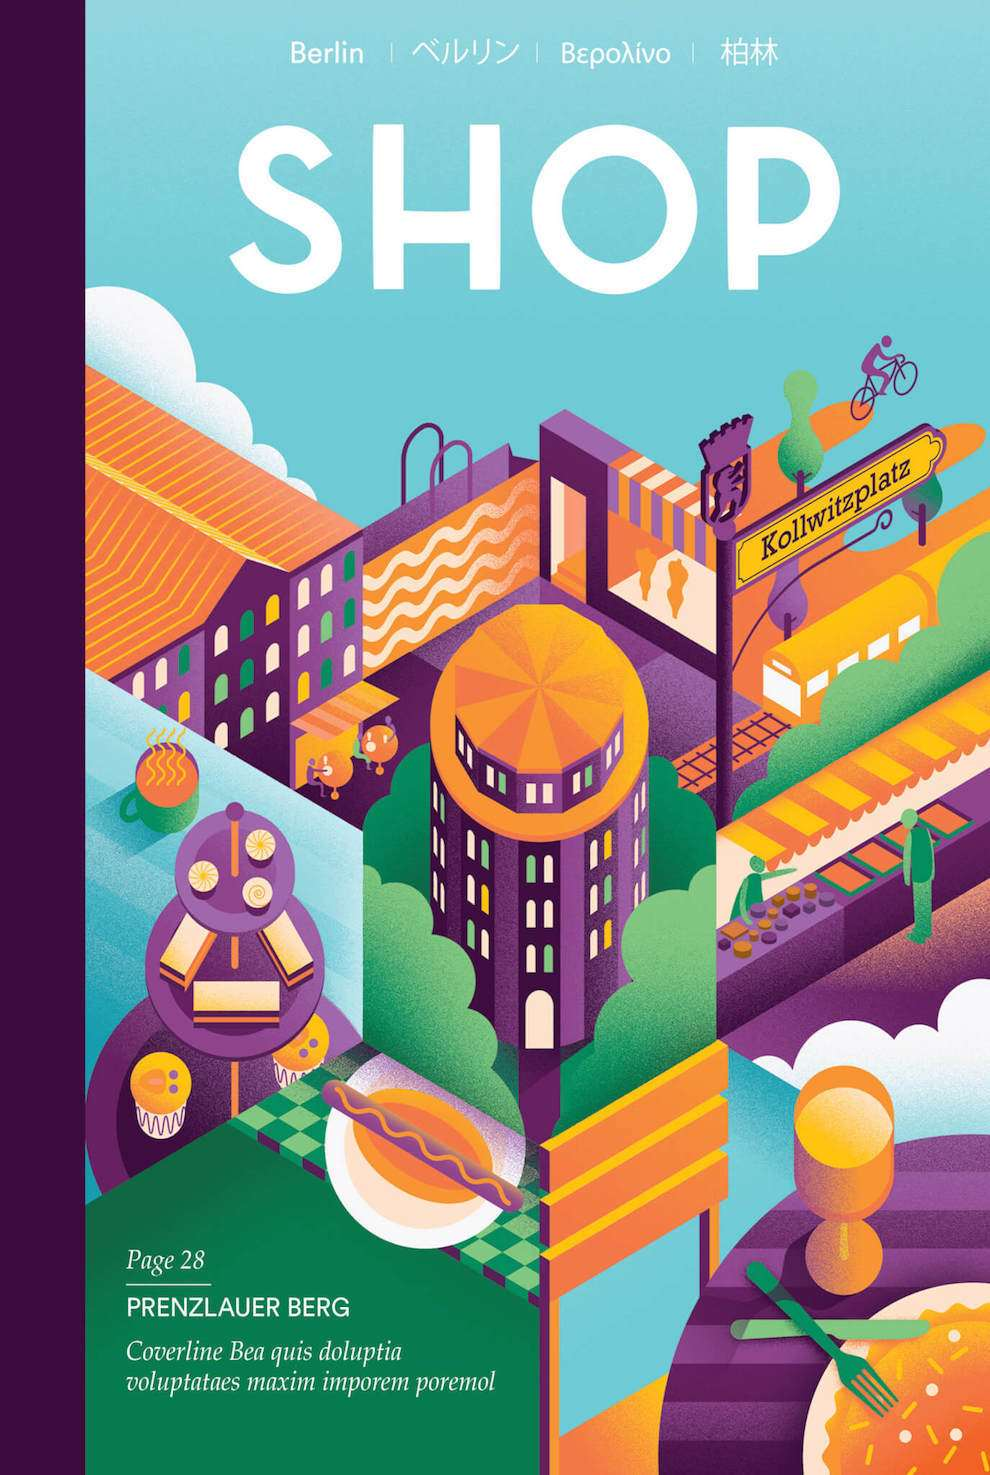 Jack Daly, Digitally illustrated magazine cover for Shop Magazine. Graphic collage style to illustrate the Prenzlauer Berg region.